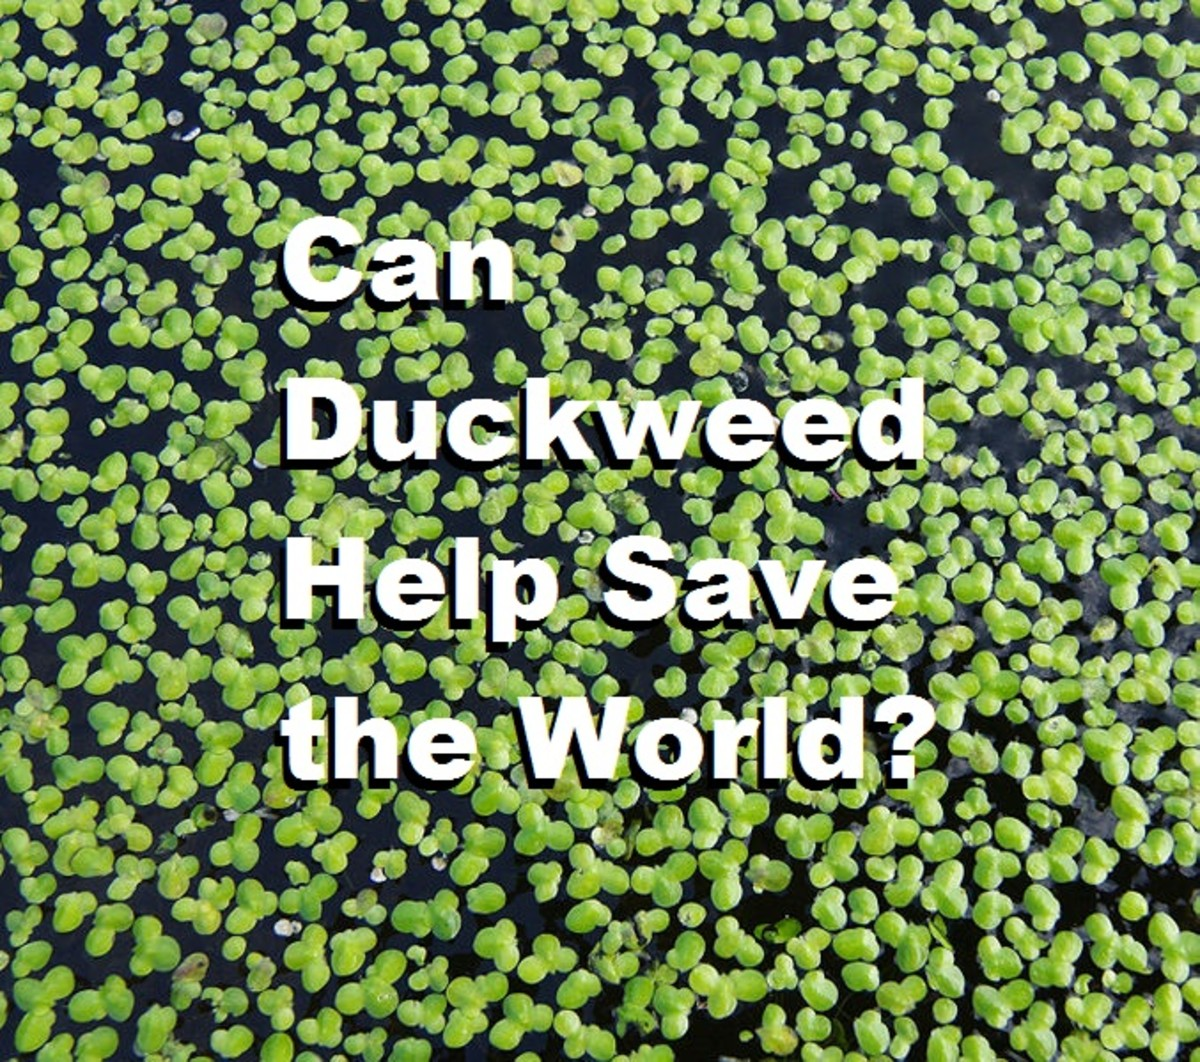 Can Duckweed Help Save the World?